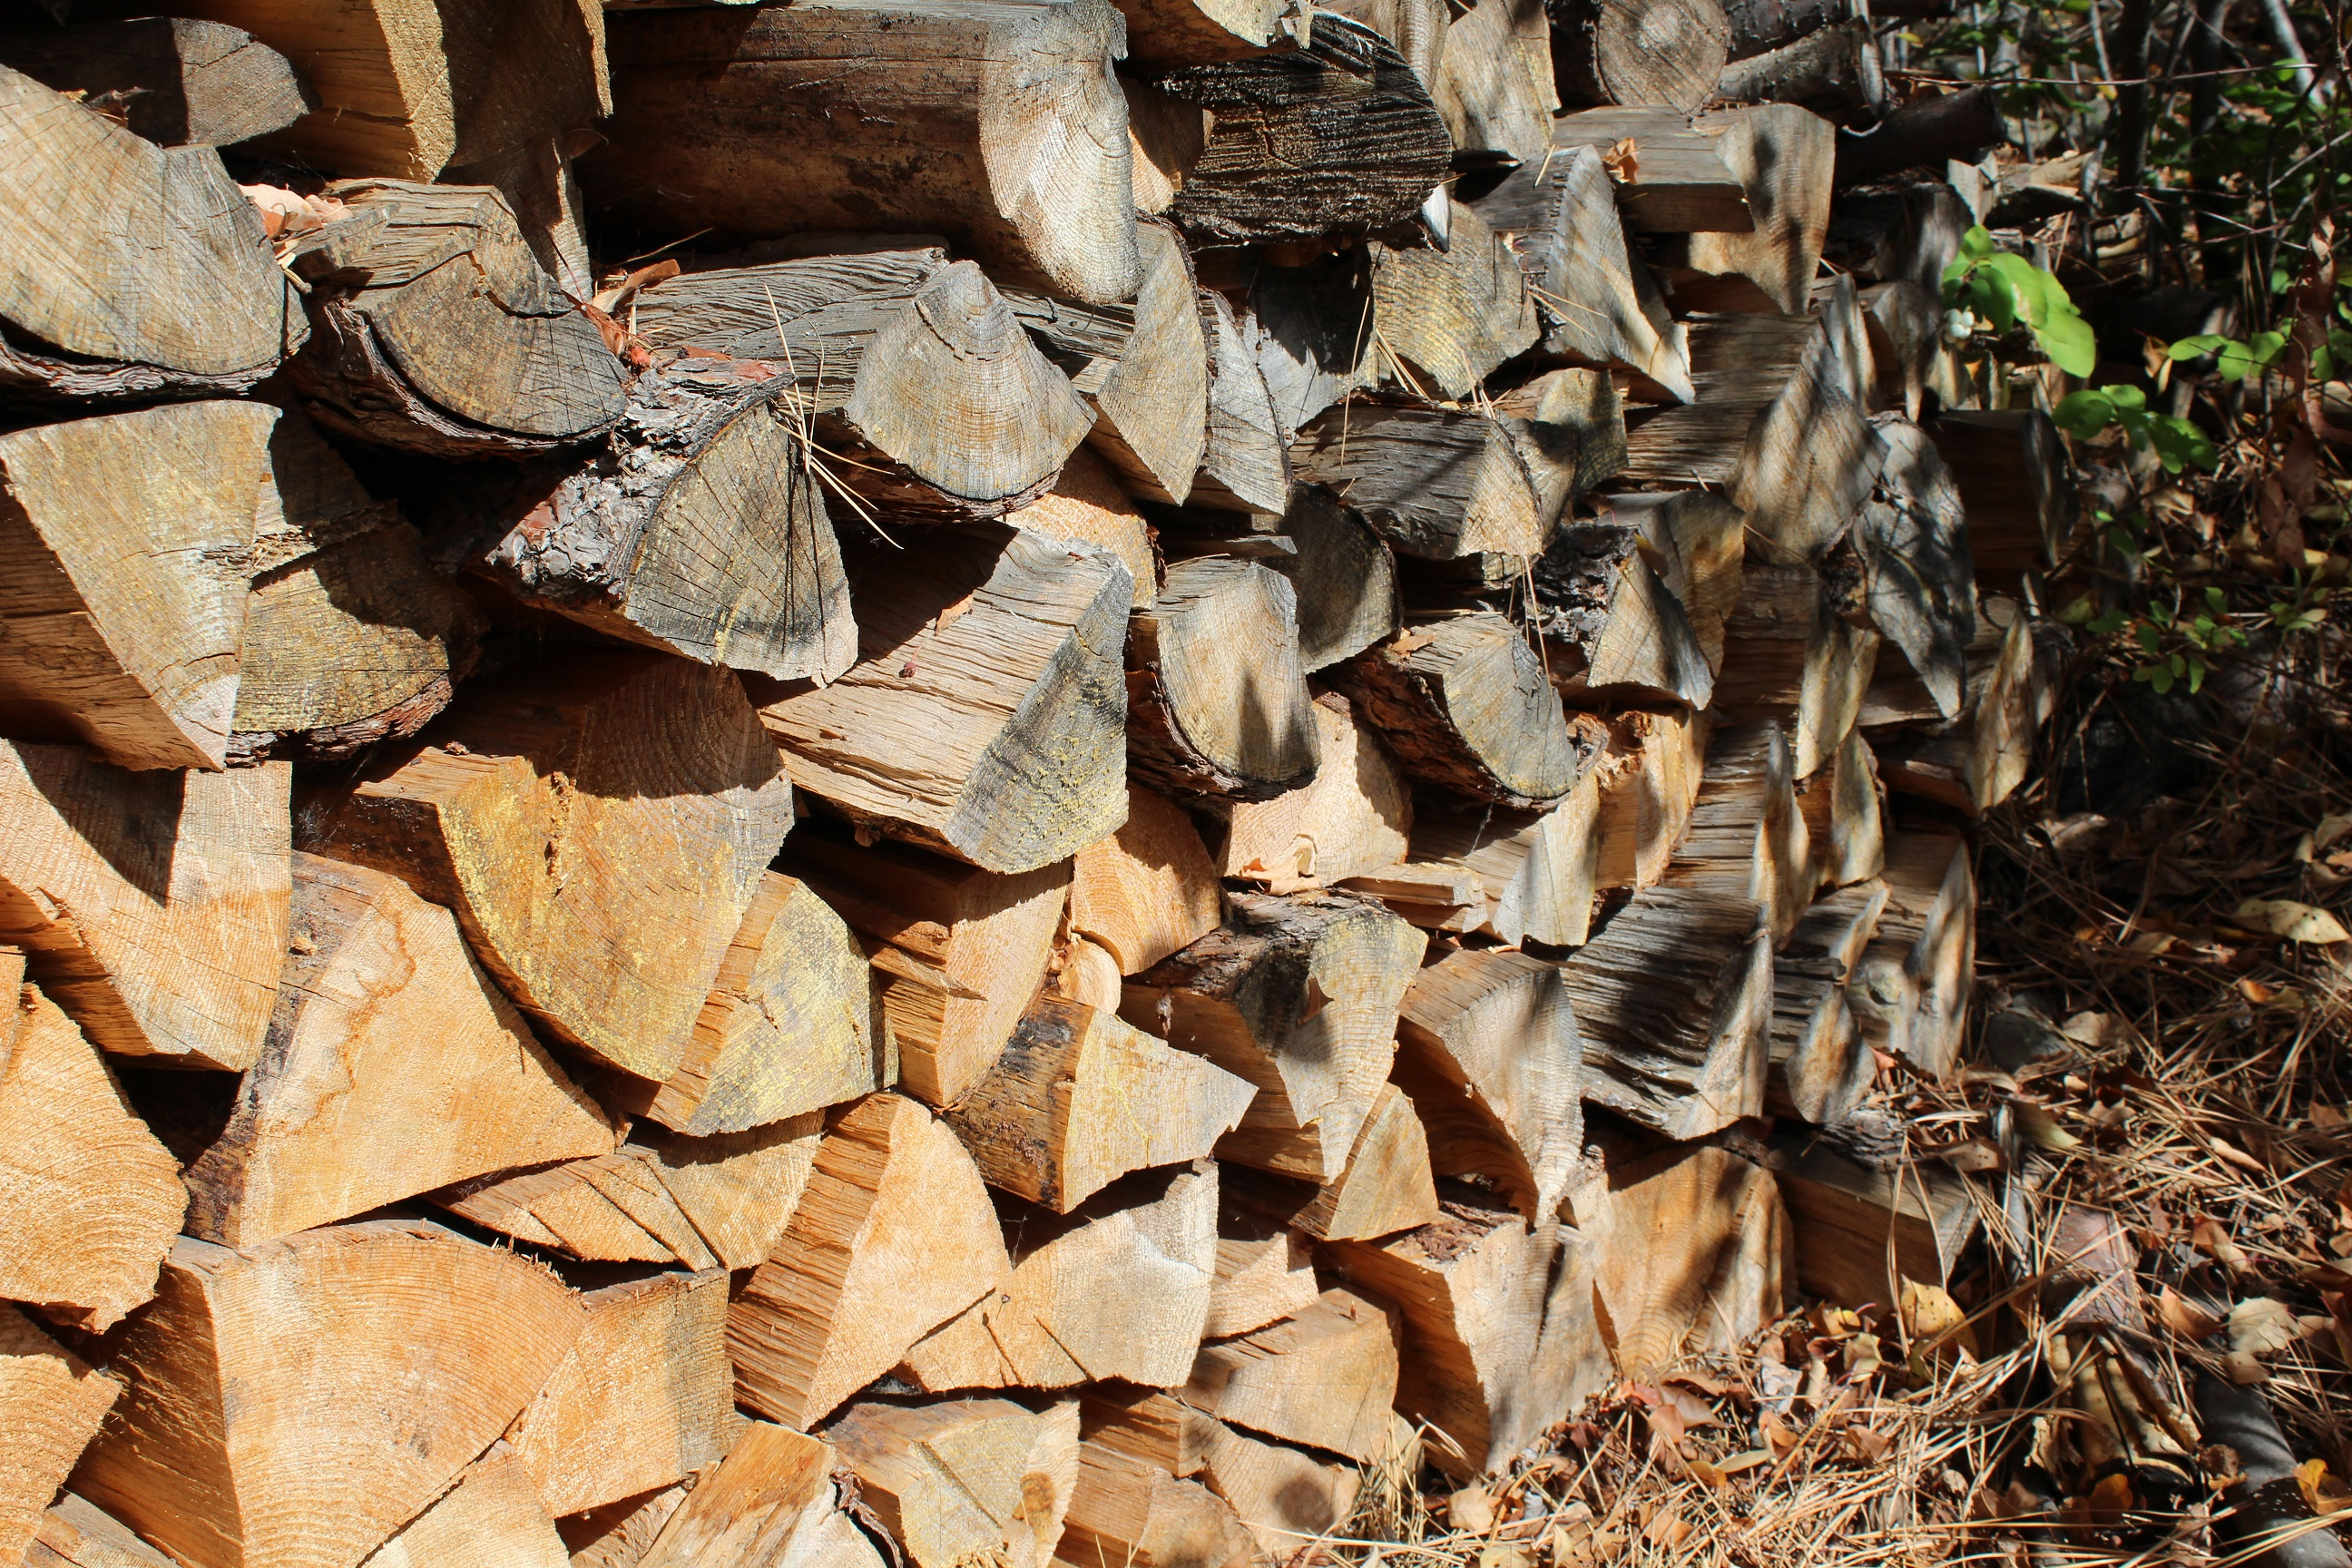 Unintended Consequences of Transporting Firewood | The EPA Blog